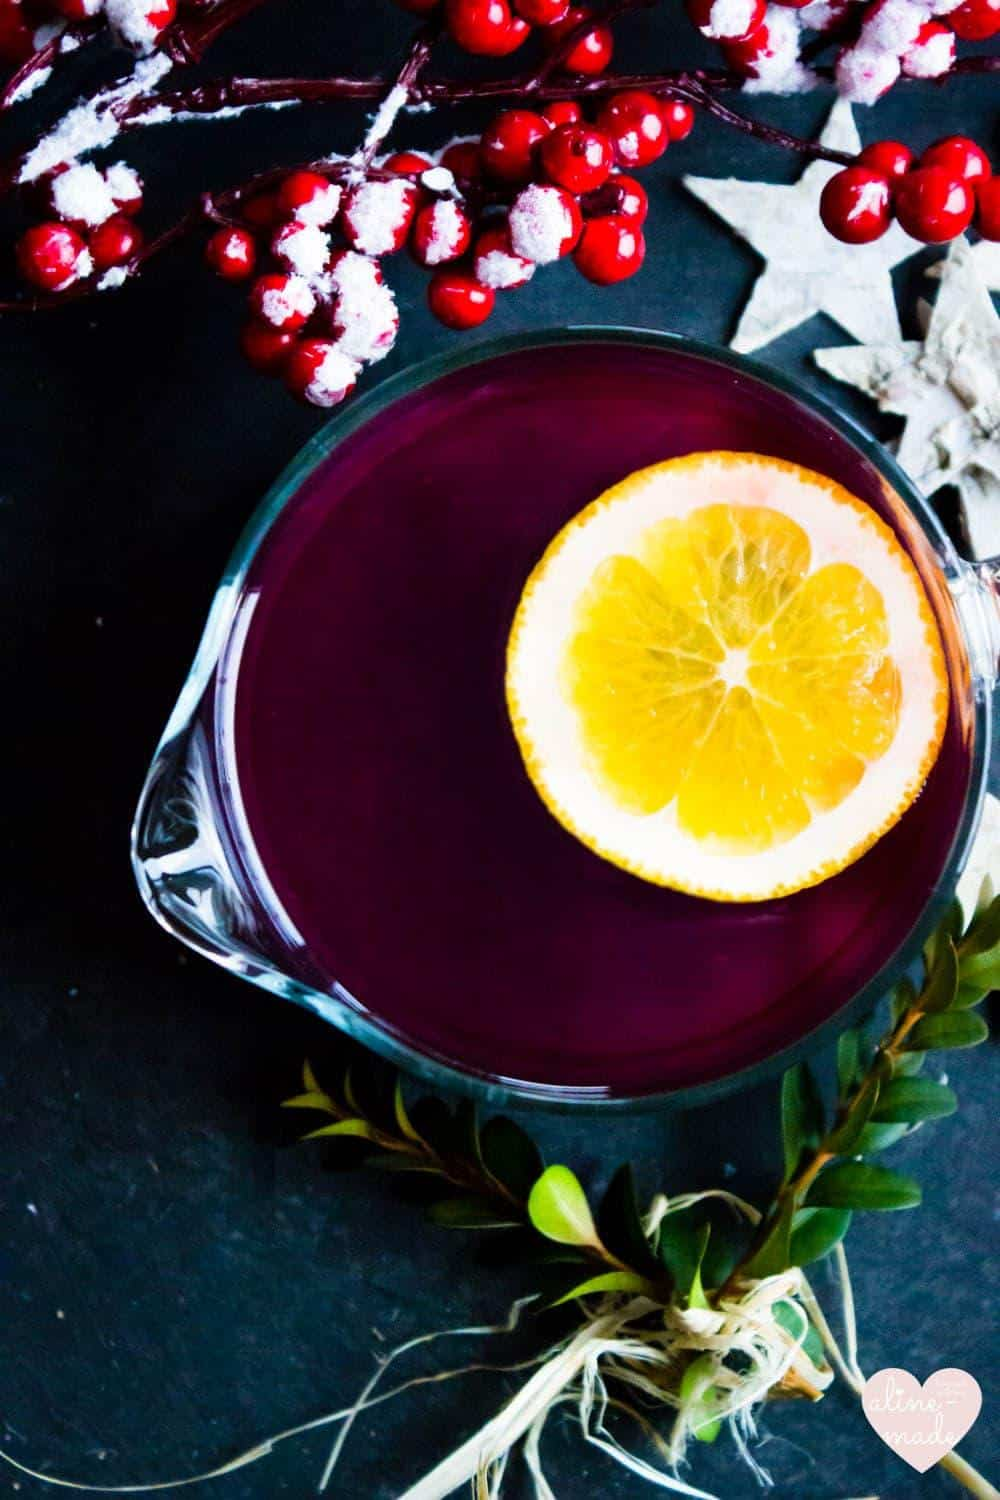 Ginger Mulled Wine served in a glass and topped with an orange slice